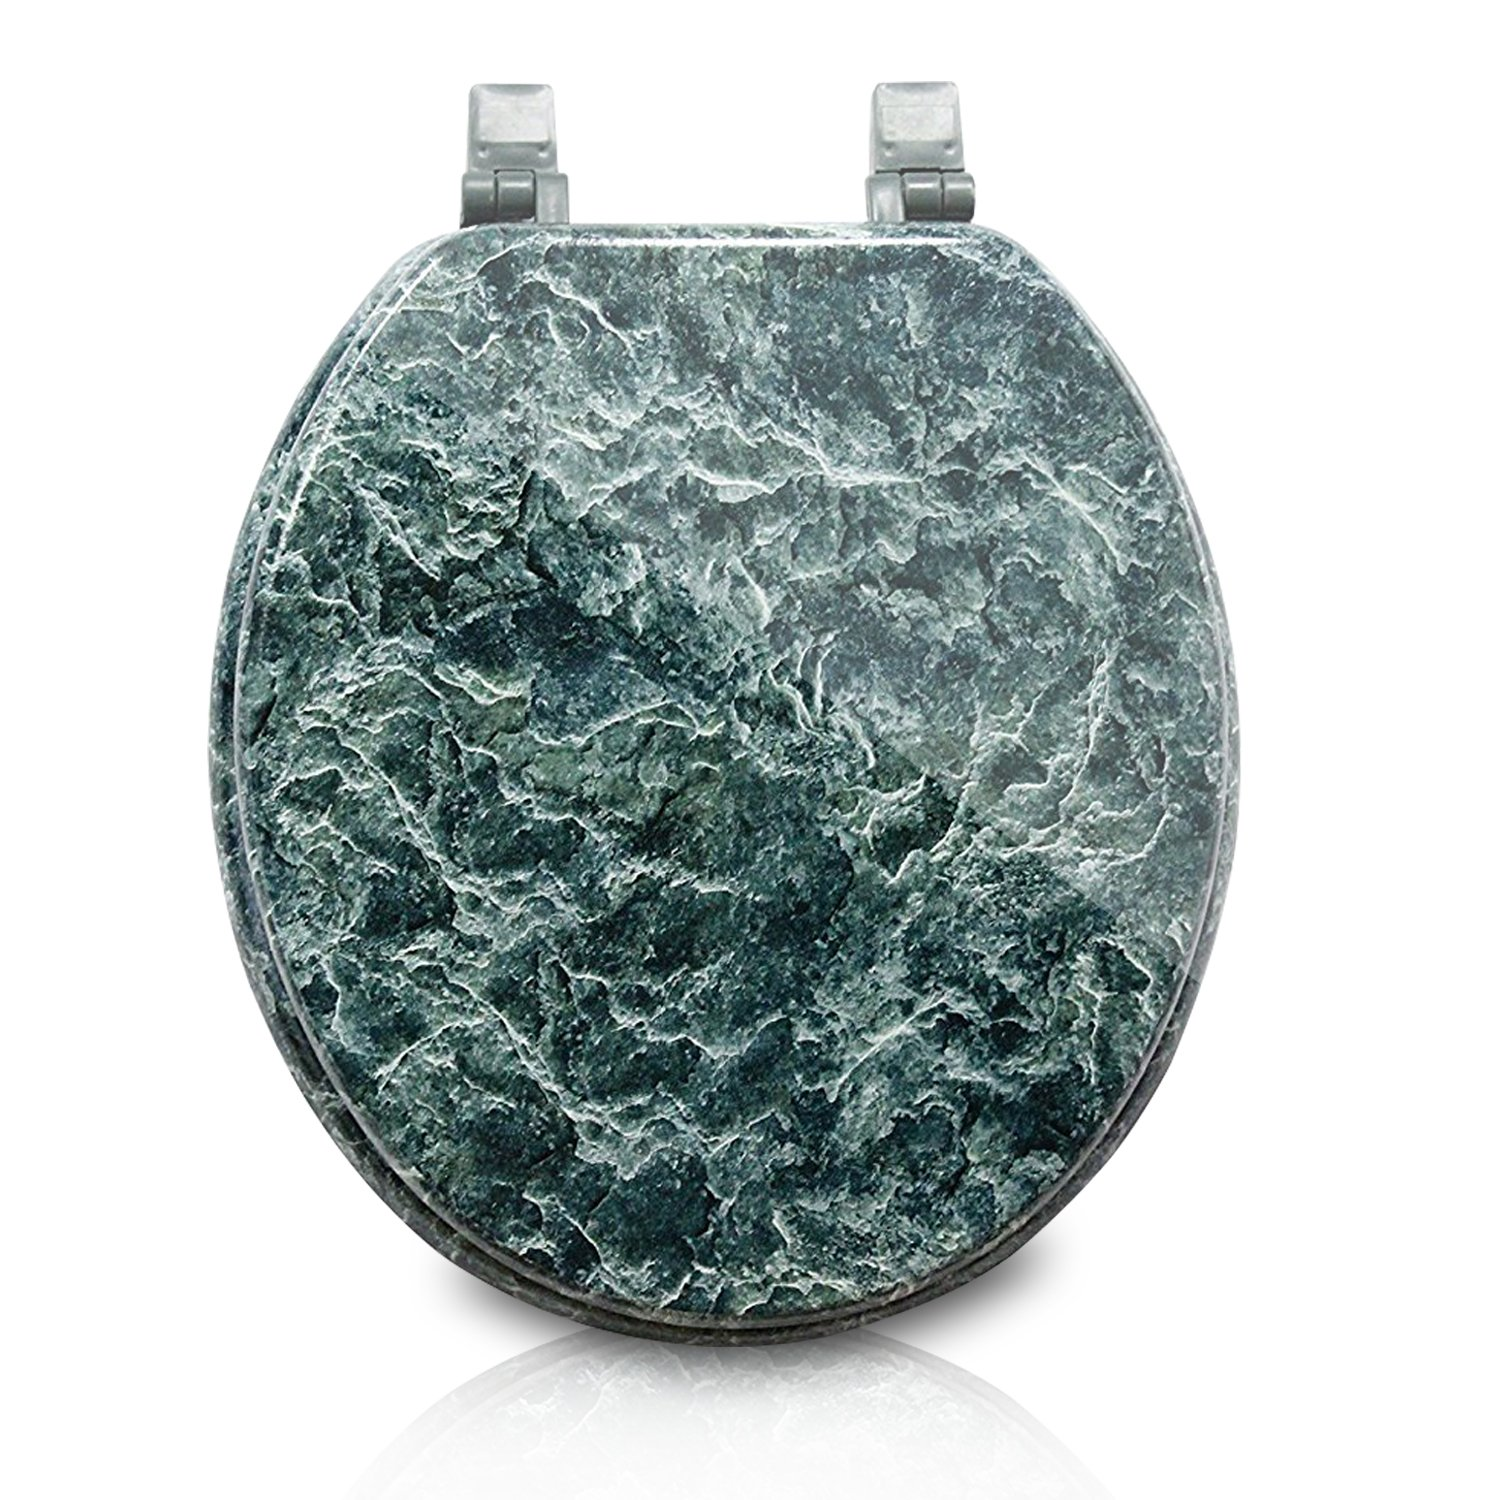 Amazon.com: Trimmer Marblized Molded Wood Toilet Seats Faux-marble ...